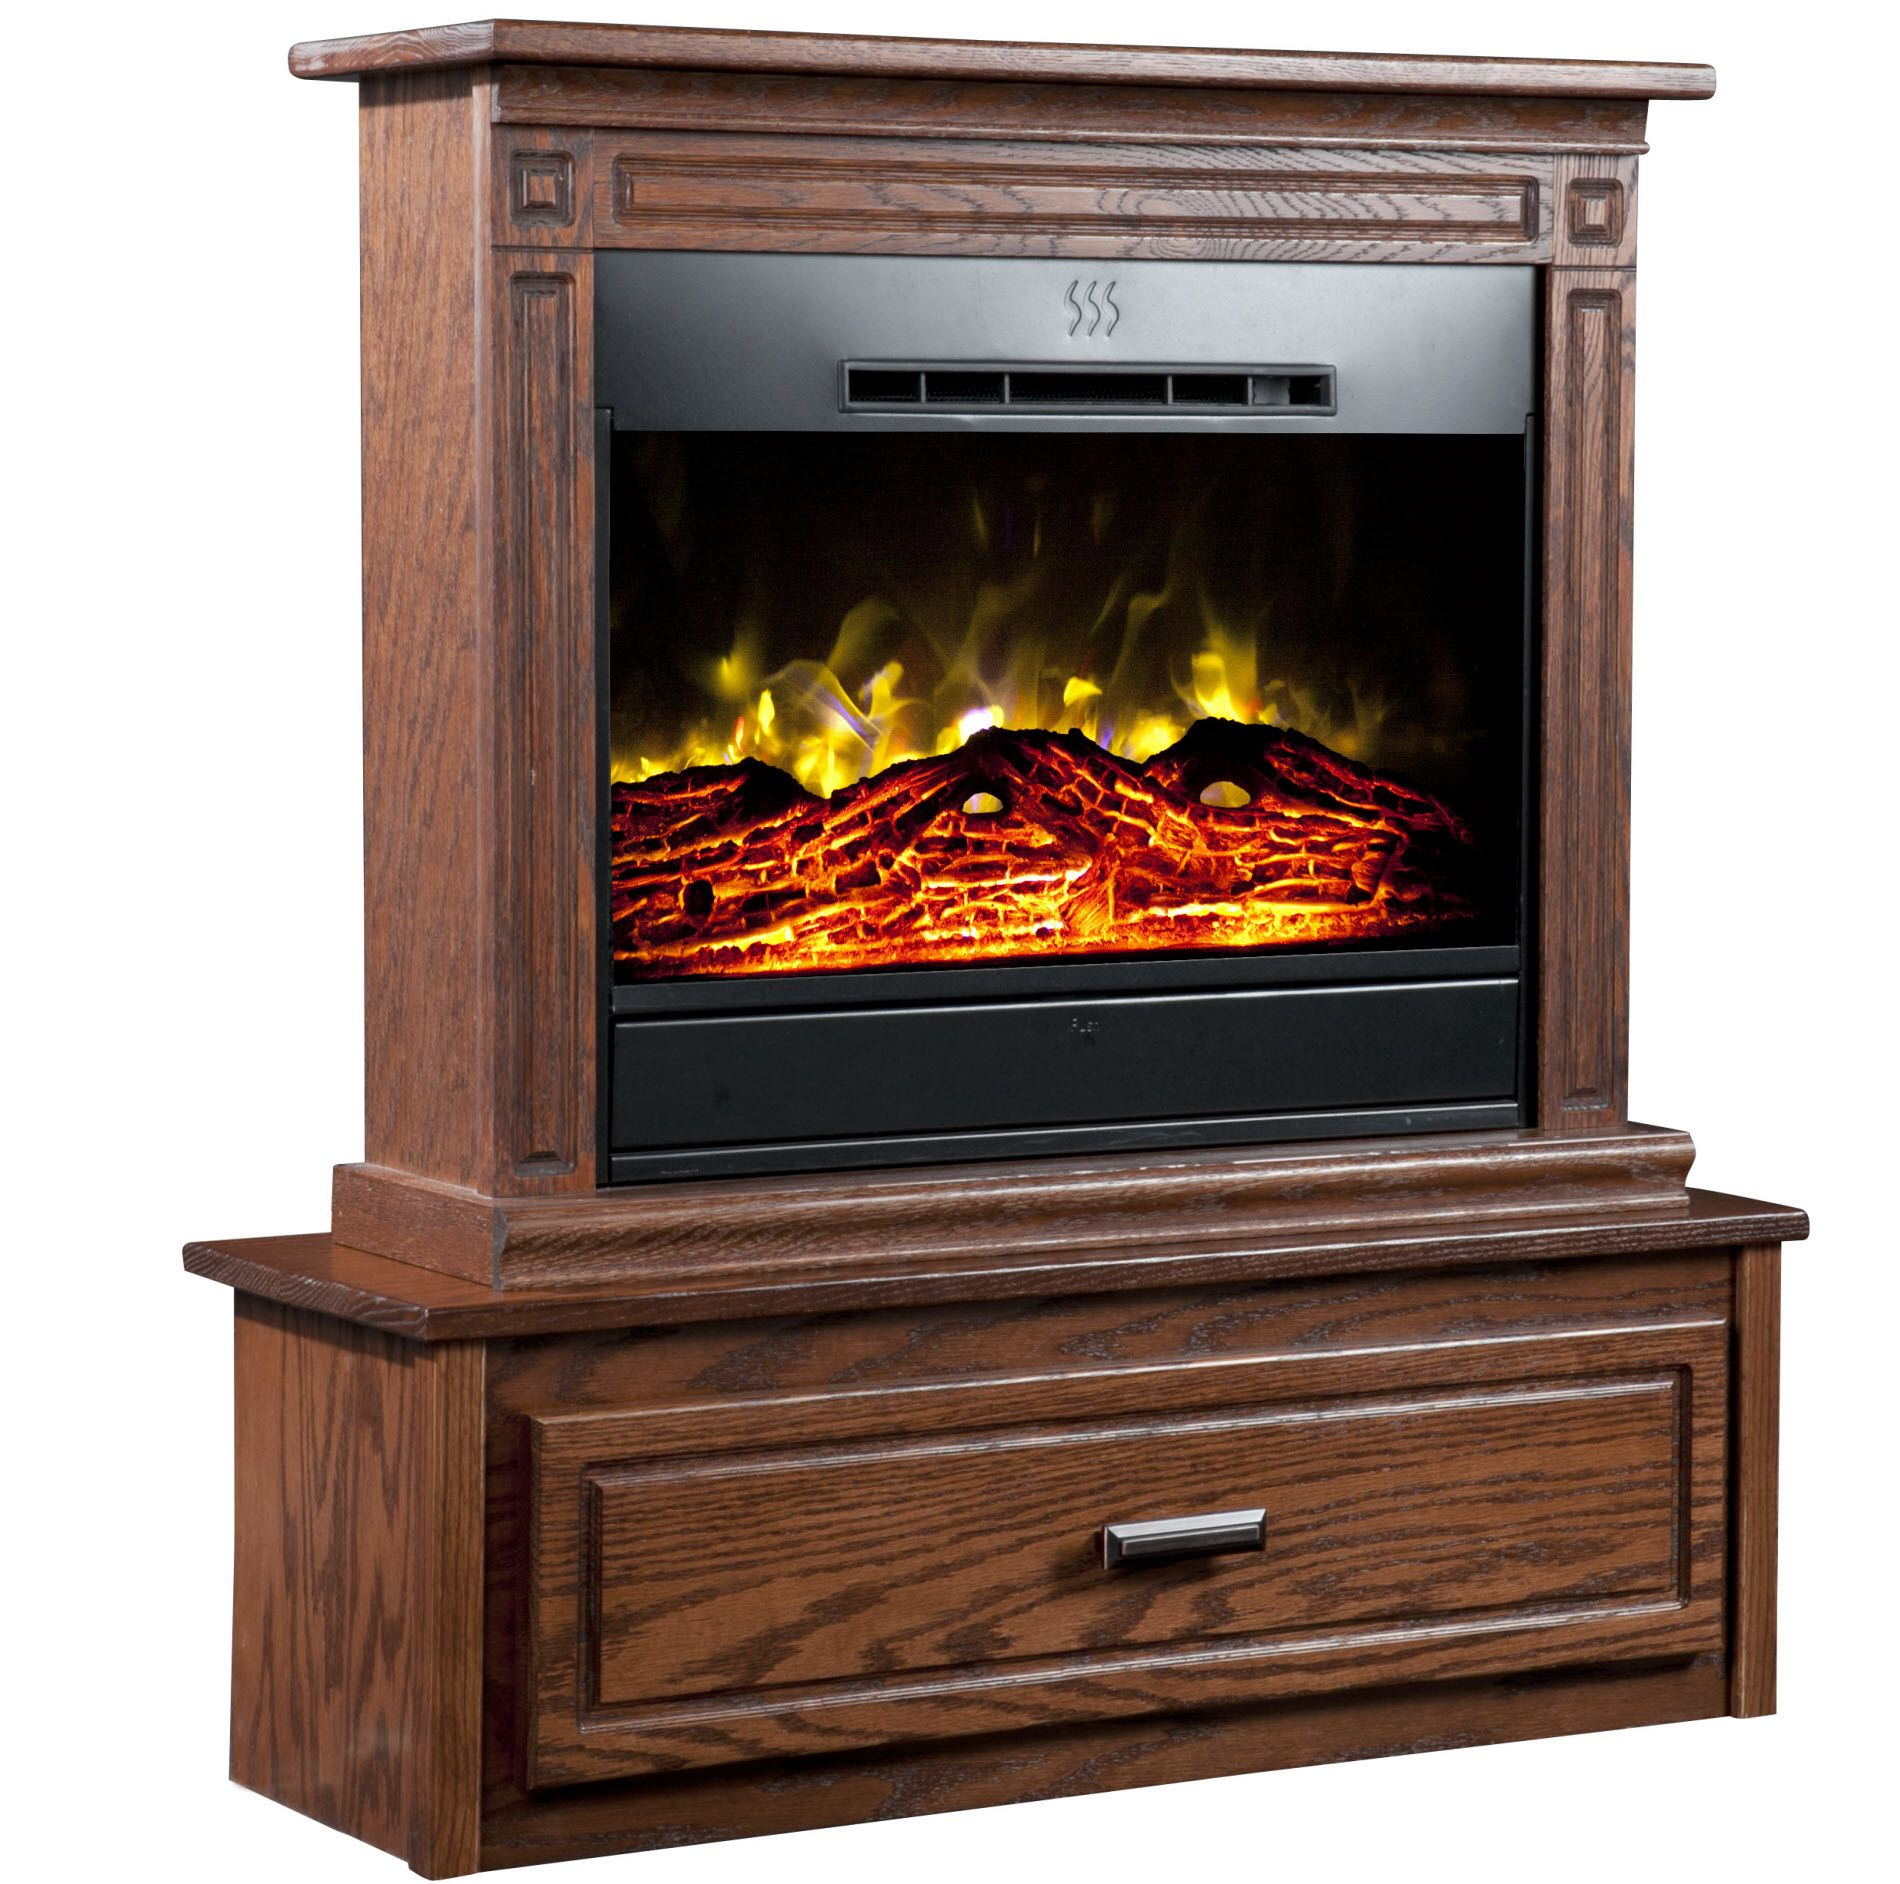 Heat Surge Hearth Accessory for Roll-n-Glow Electric Fireplace - Dark Oak